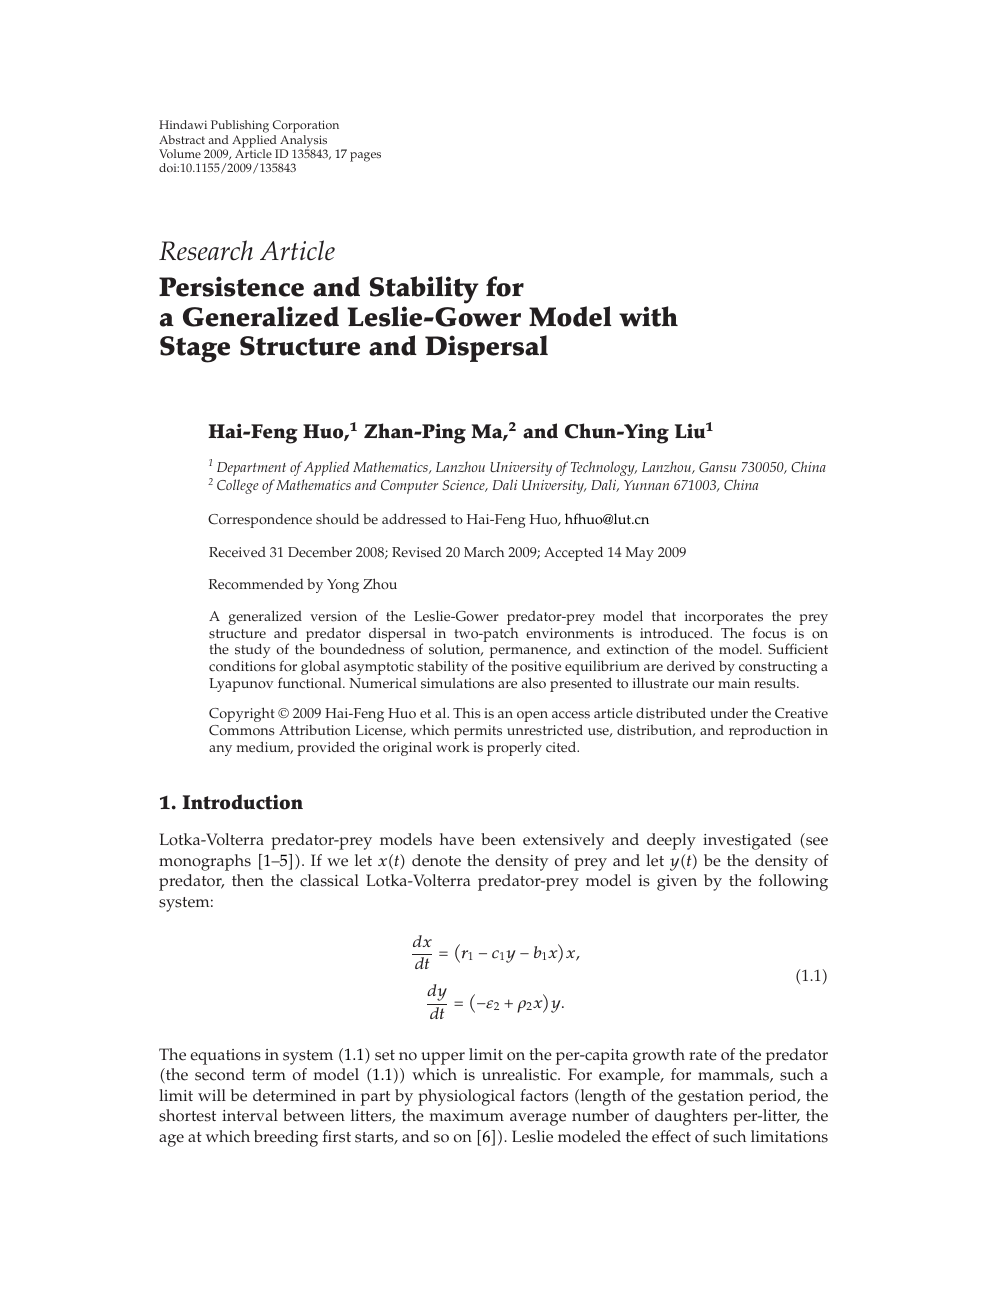 Persistence and Stability for a Generalized Leslie-Gower Model with